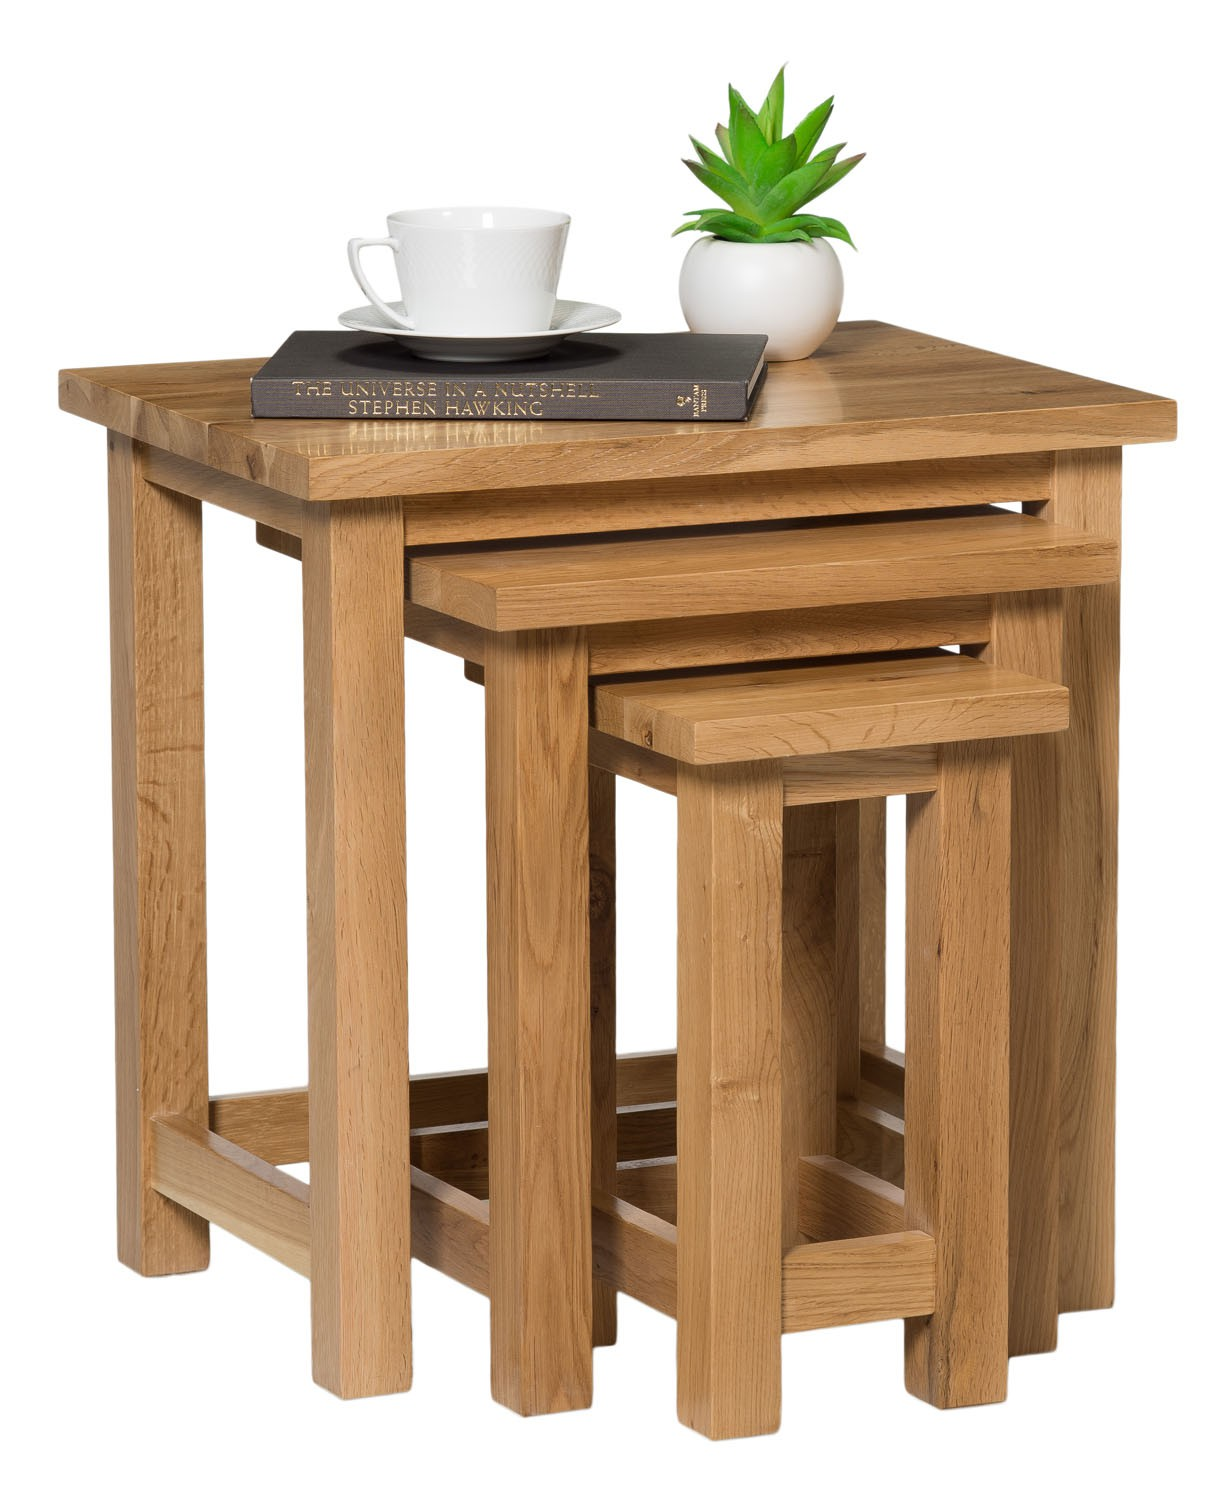 Solid oak nest of tables from waverly different